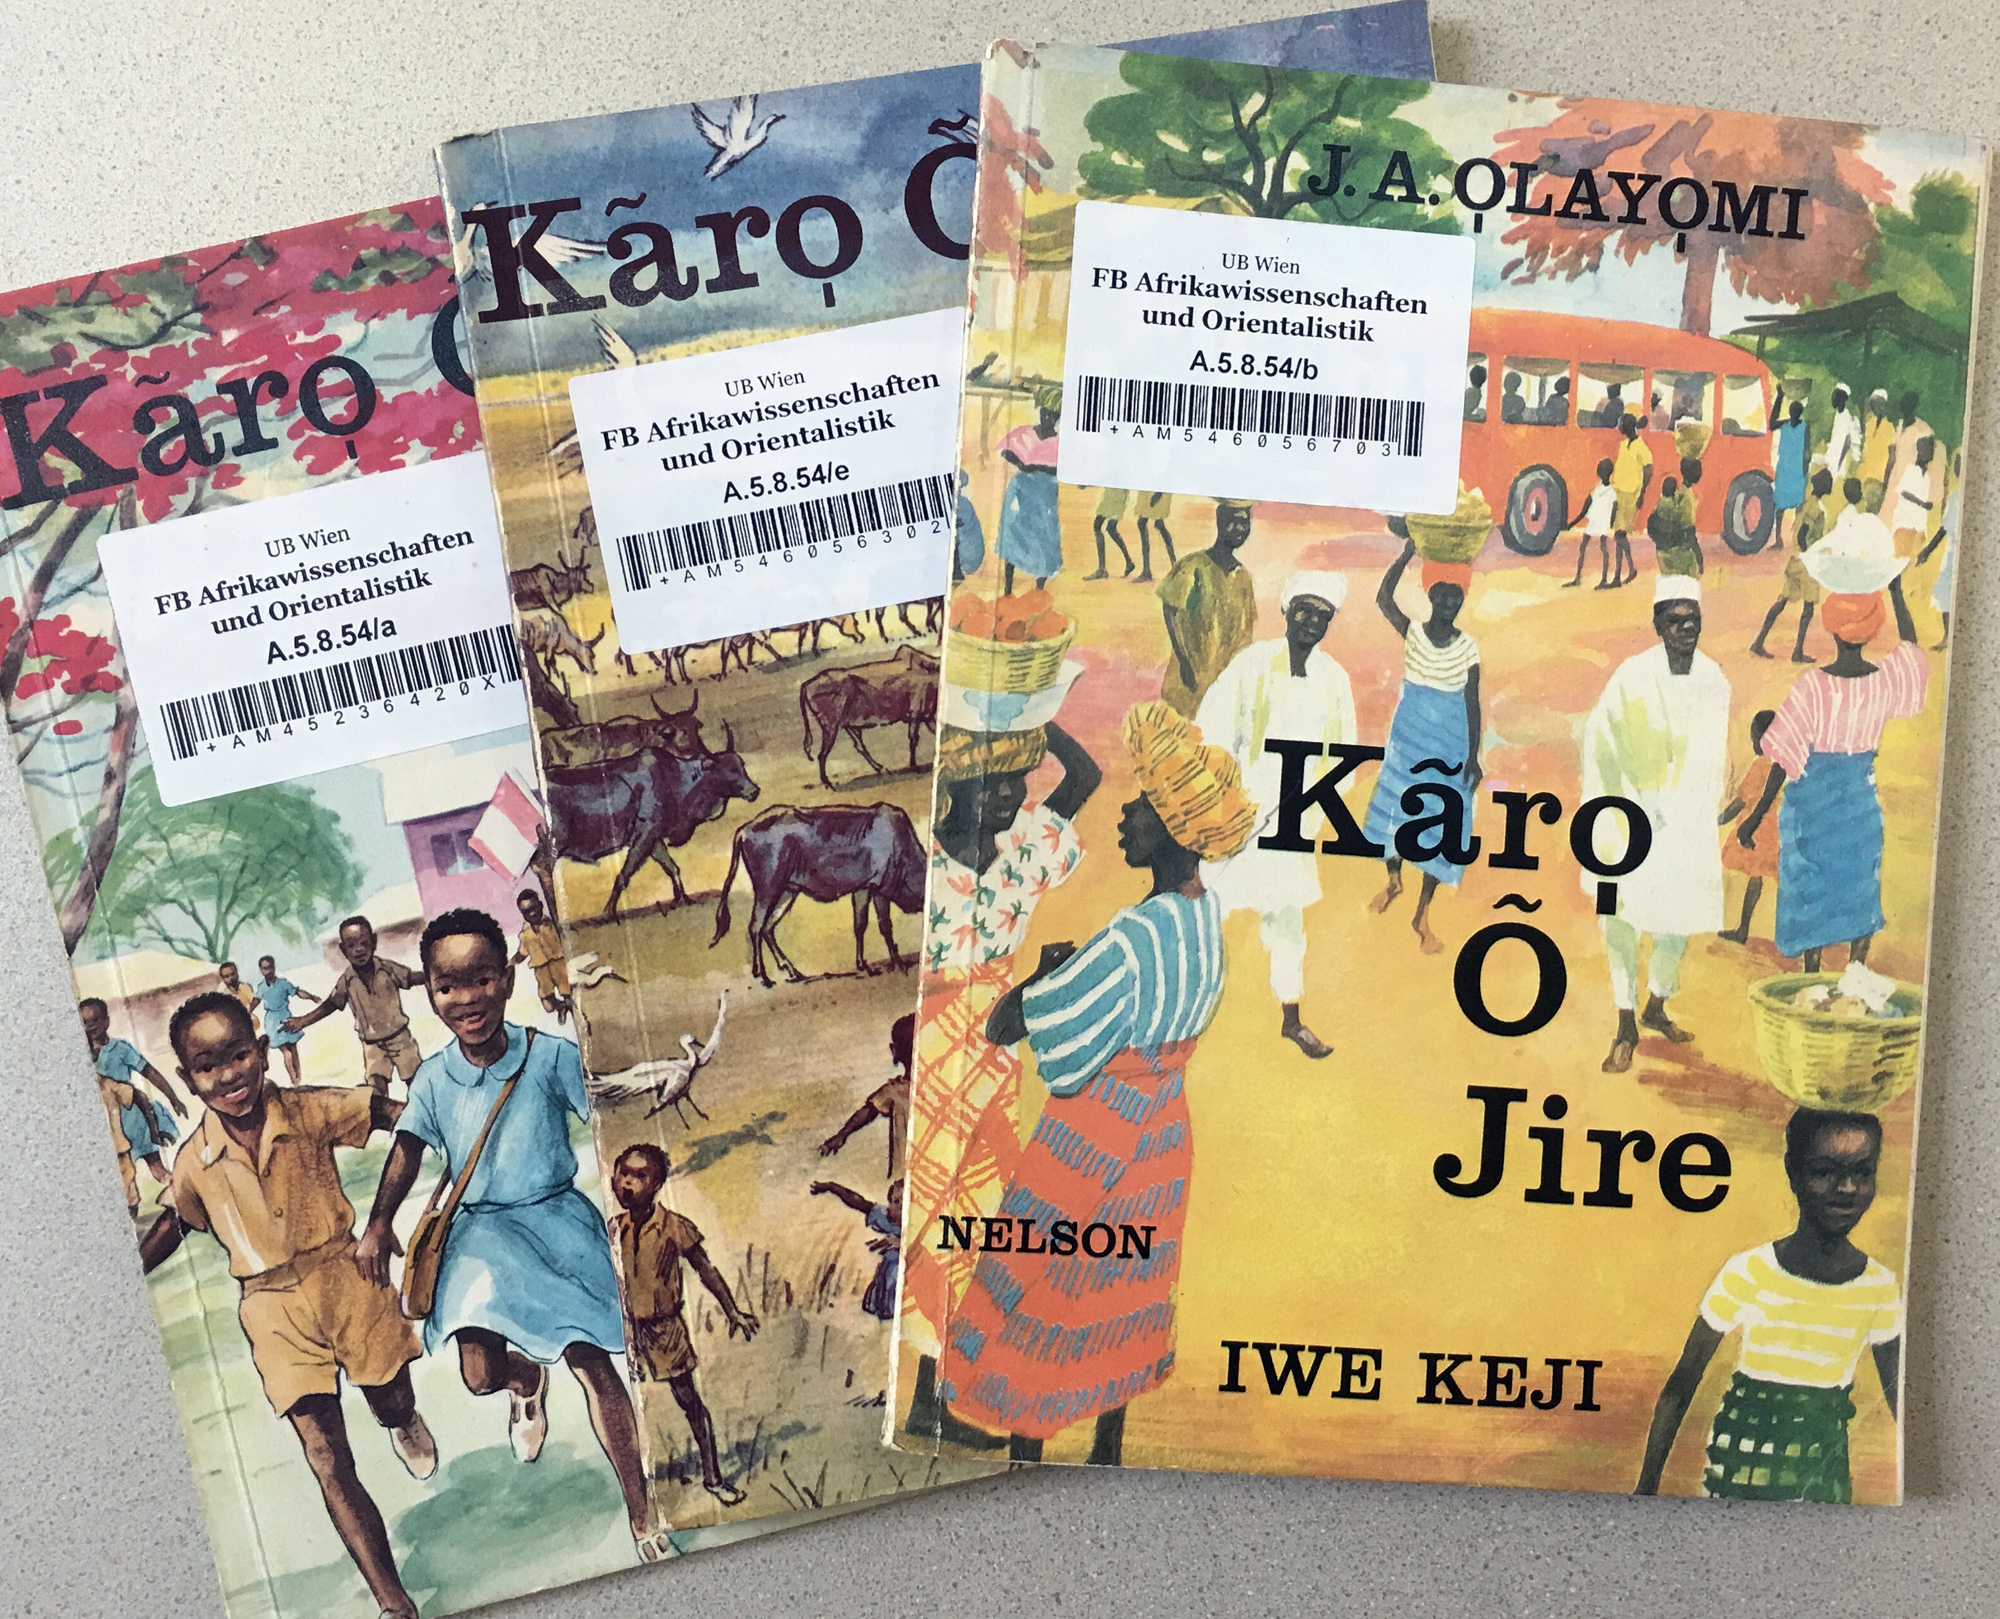 Beautiful books were published in Nigeria a long time ago,language policies were different back in the days. The tilde is not in use anymore. ©Orisha Image